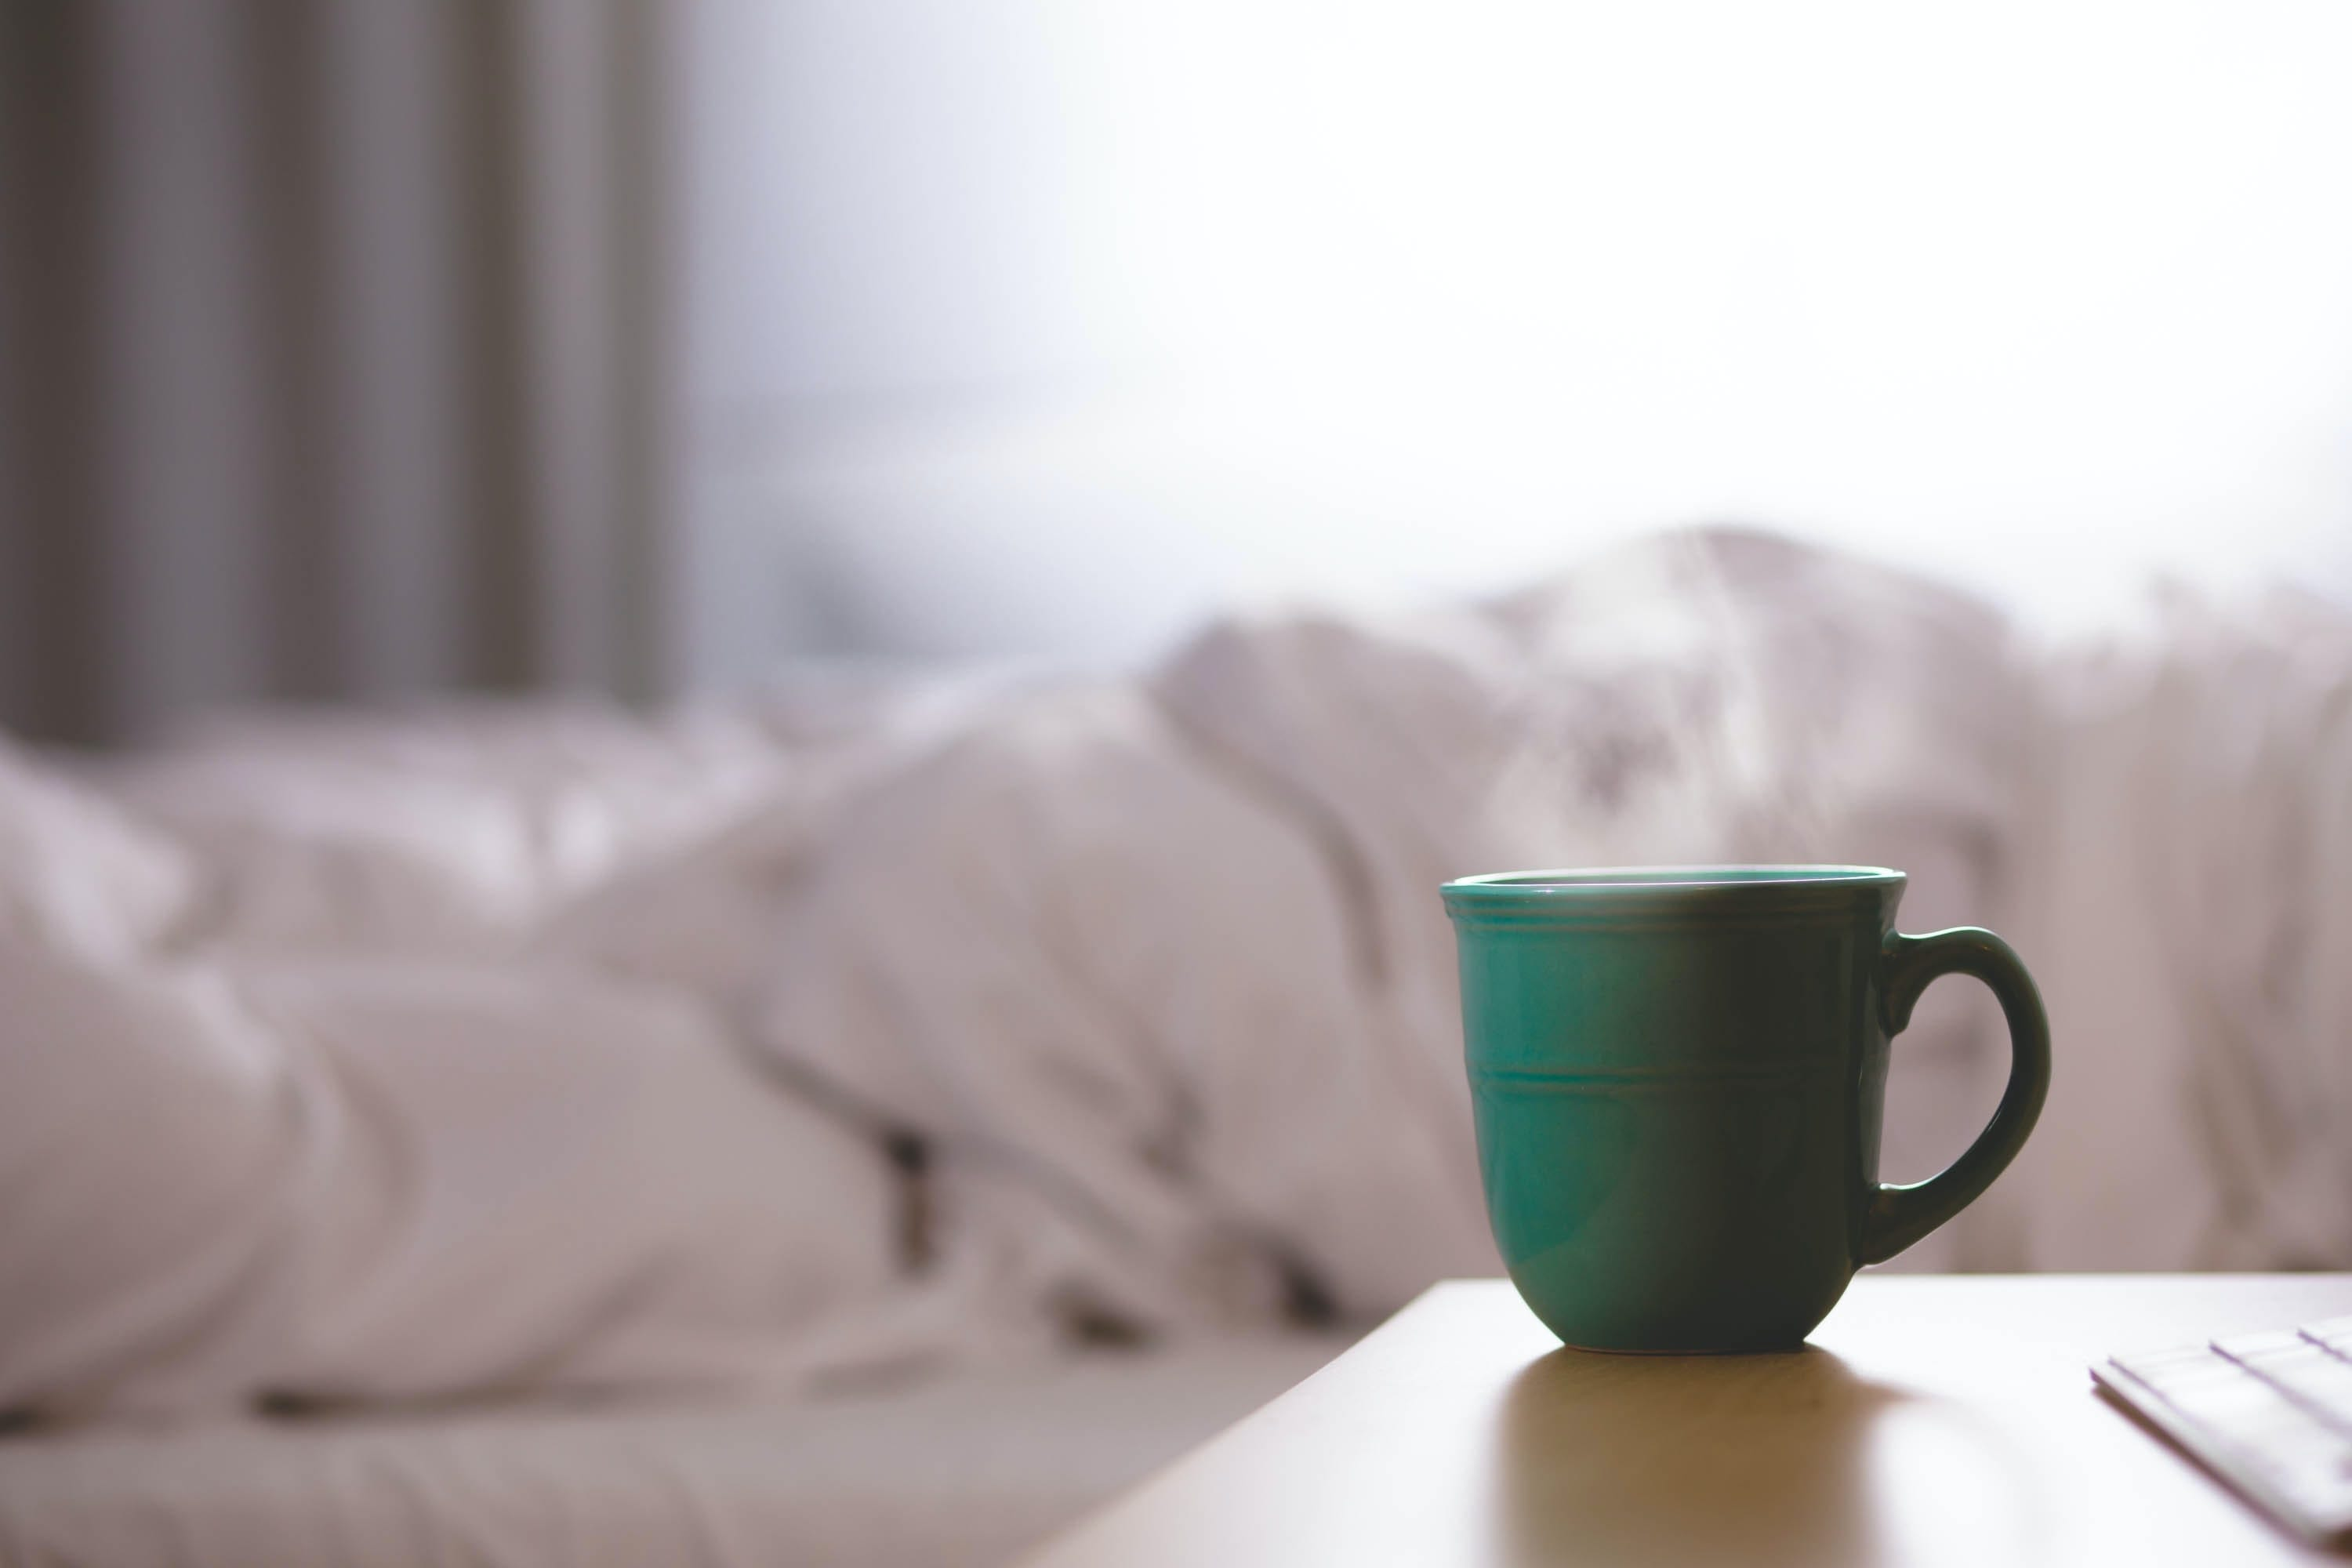 Five Bad Sleep Habits That Will Keep You Tossing and Turning